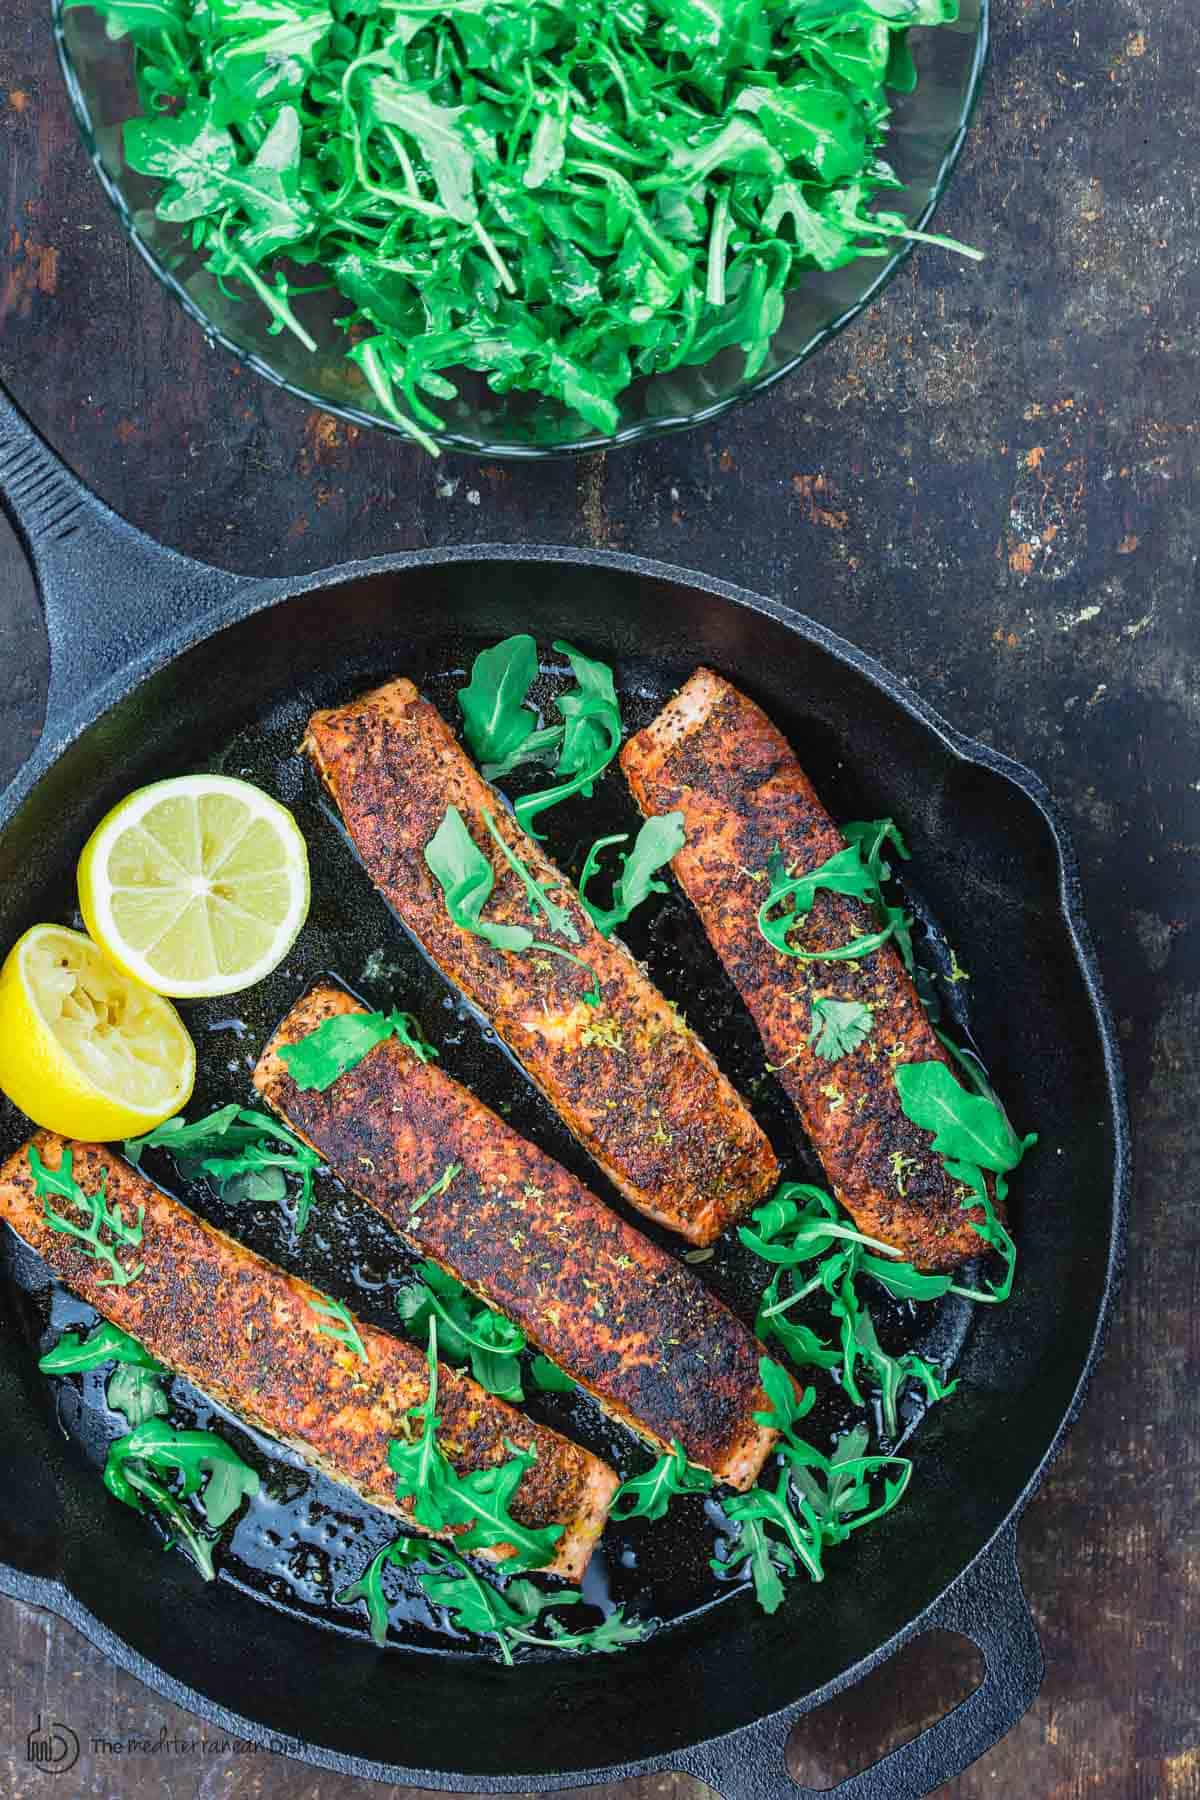 pan fried salmon in the pan and a side of arugula